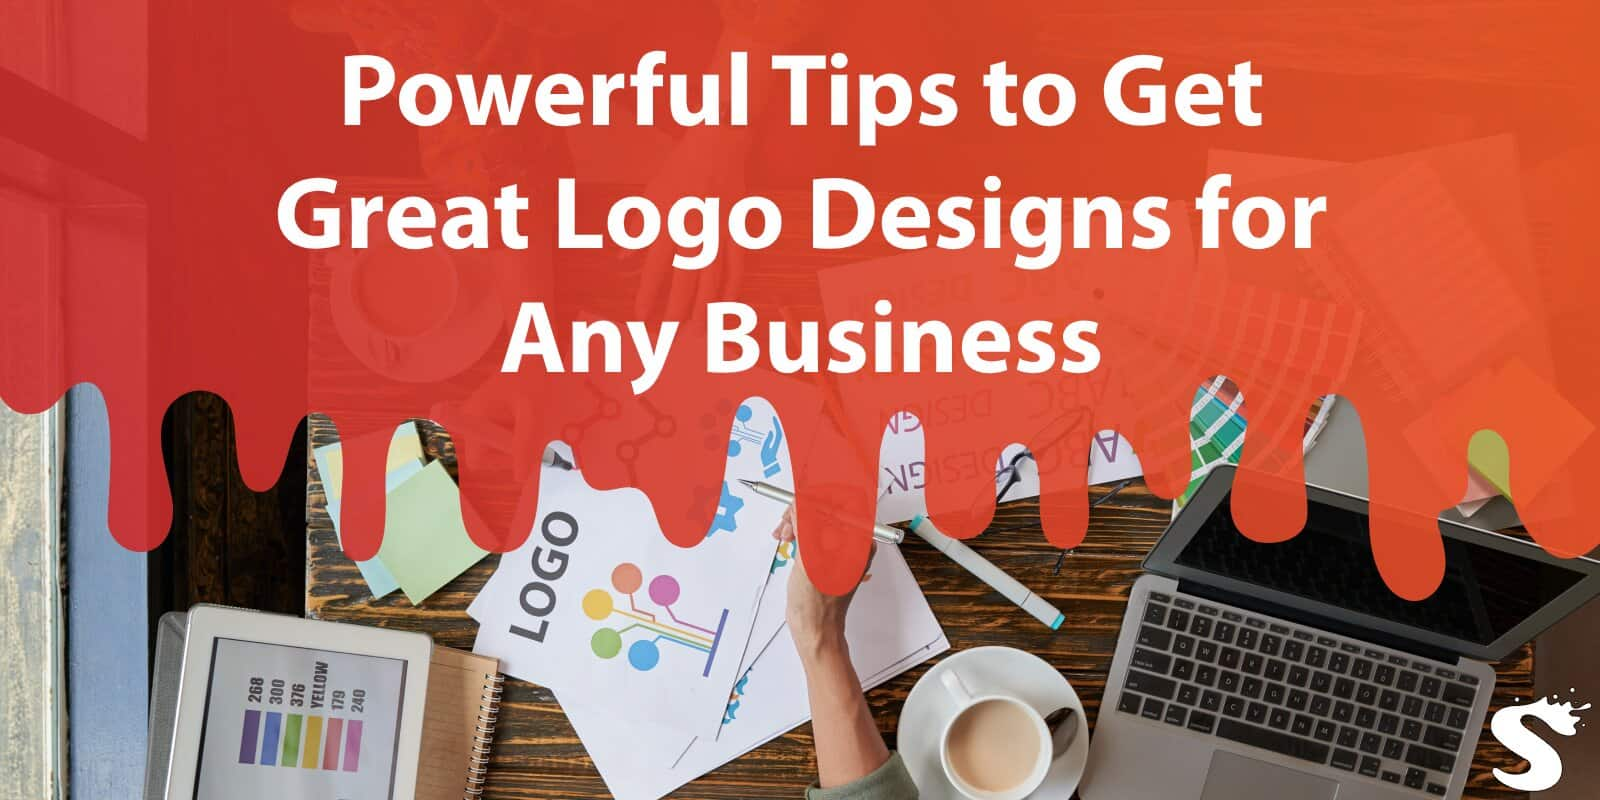 Powerful Tips to Get Great Logo Designs for Any Business